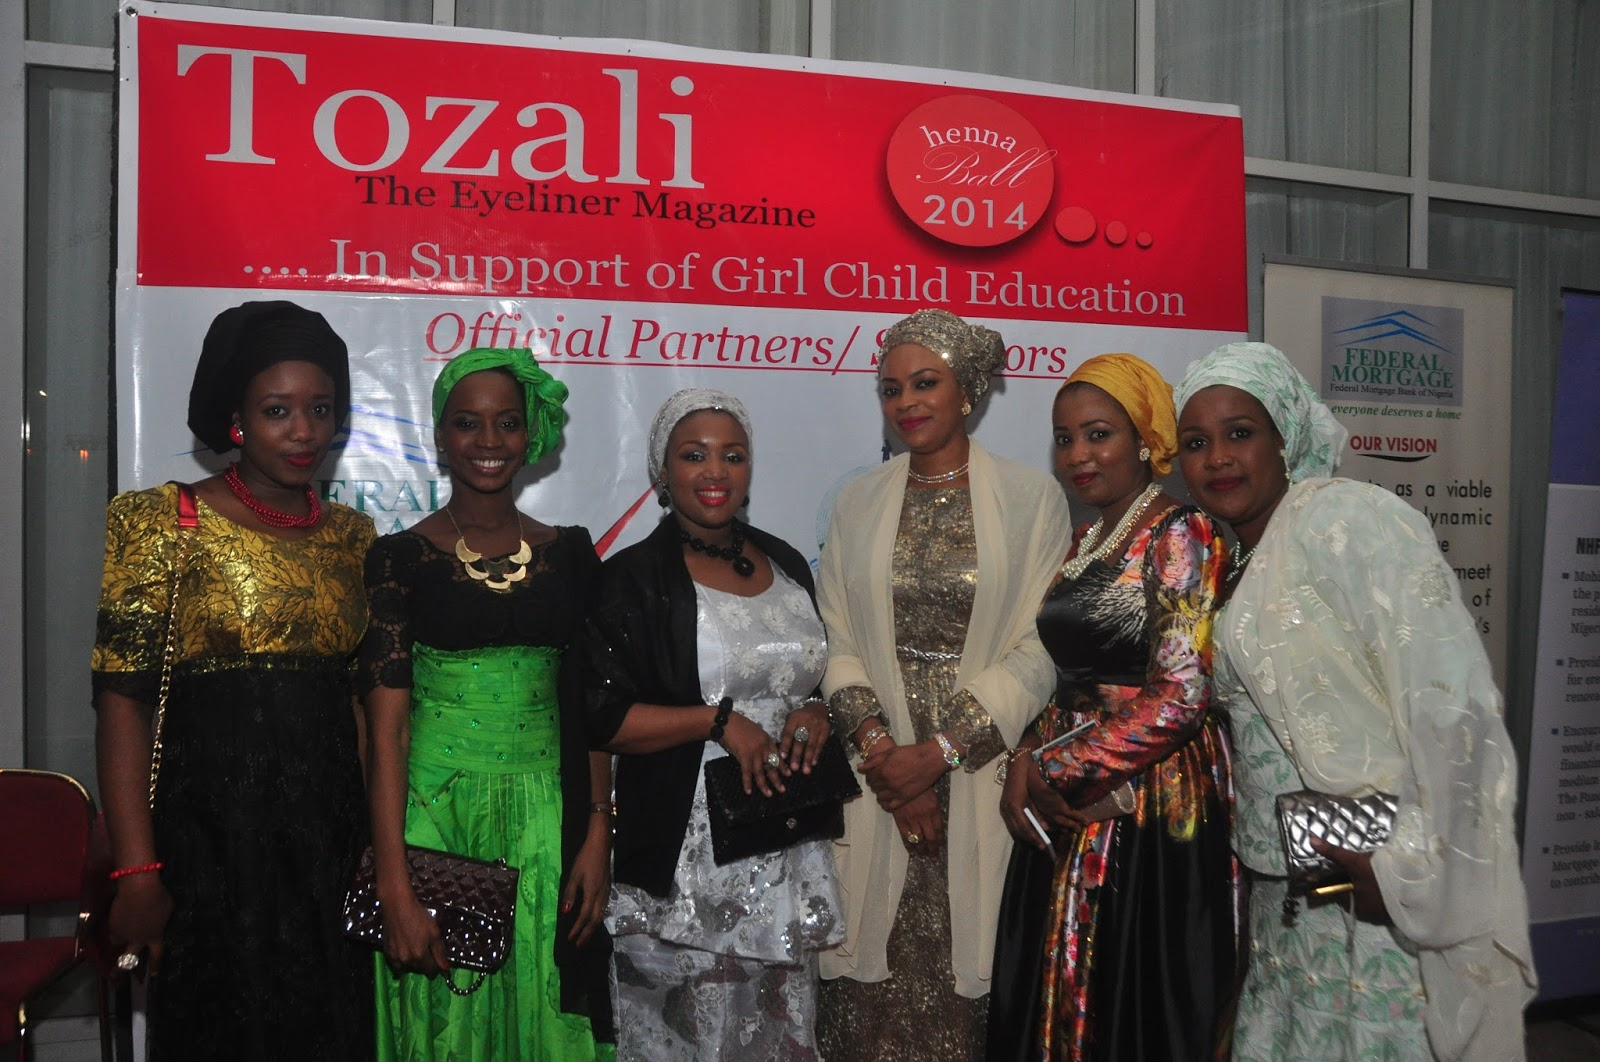 TOZALI Henna Ball And Award Night 2014